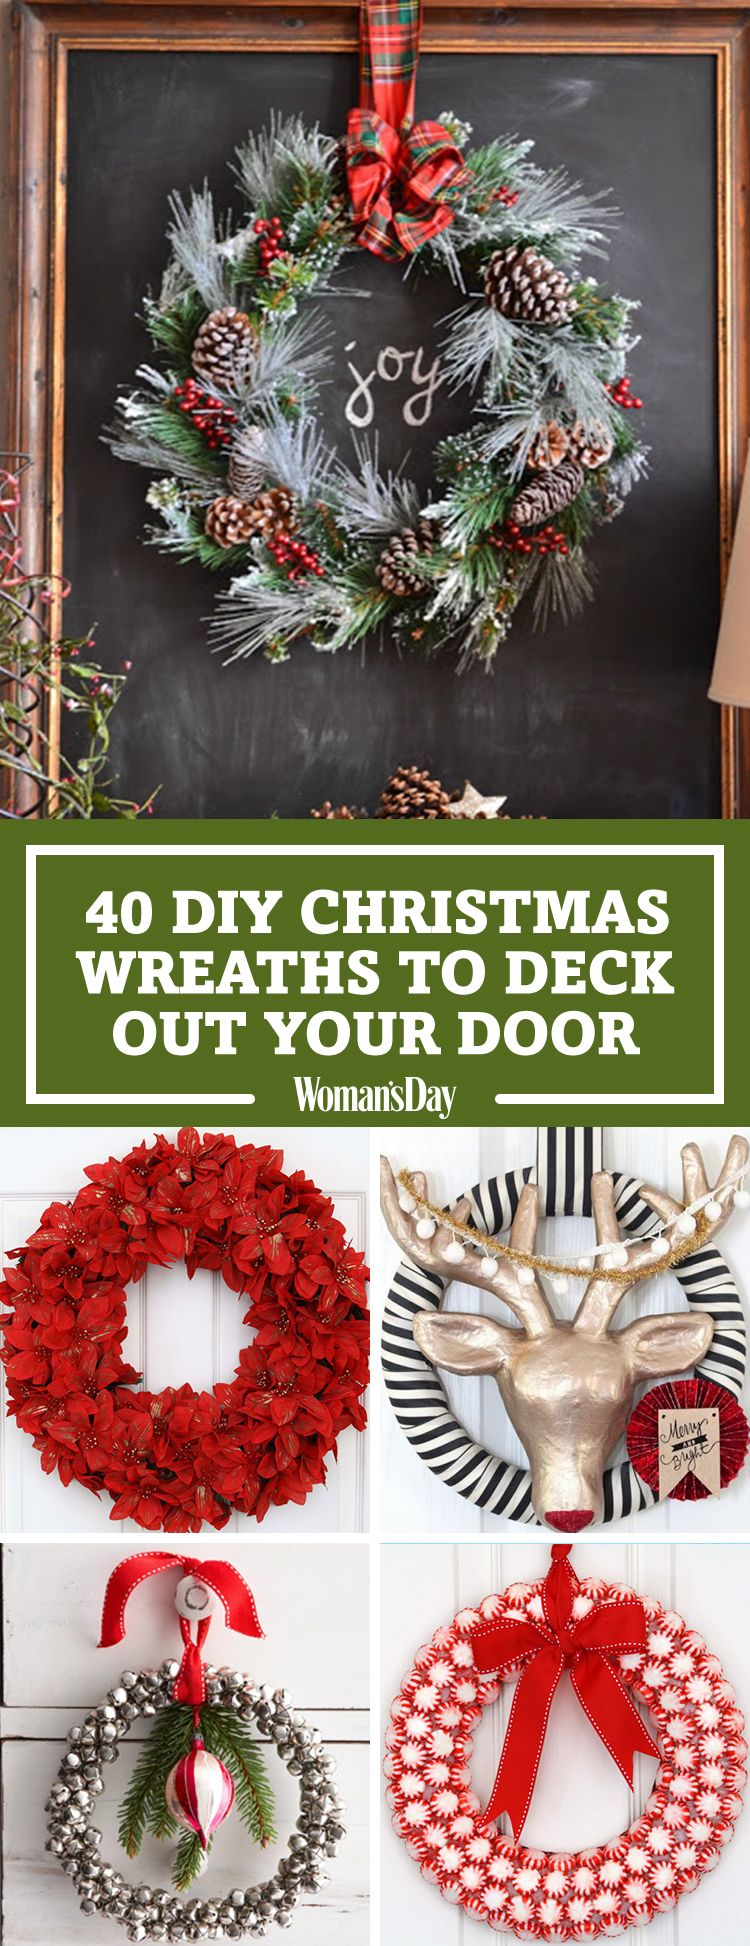 with are wreath ideas wreaths my ornament santa diy sons best christmas belt doors for of the holidays these door kitchen fun